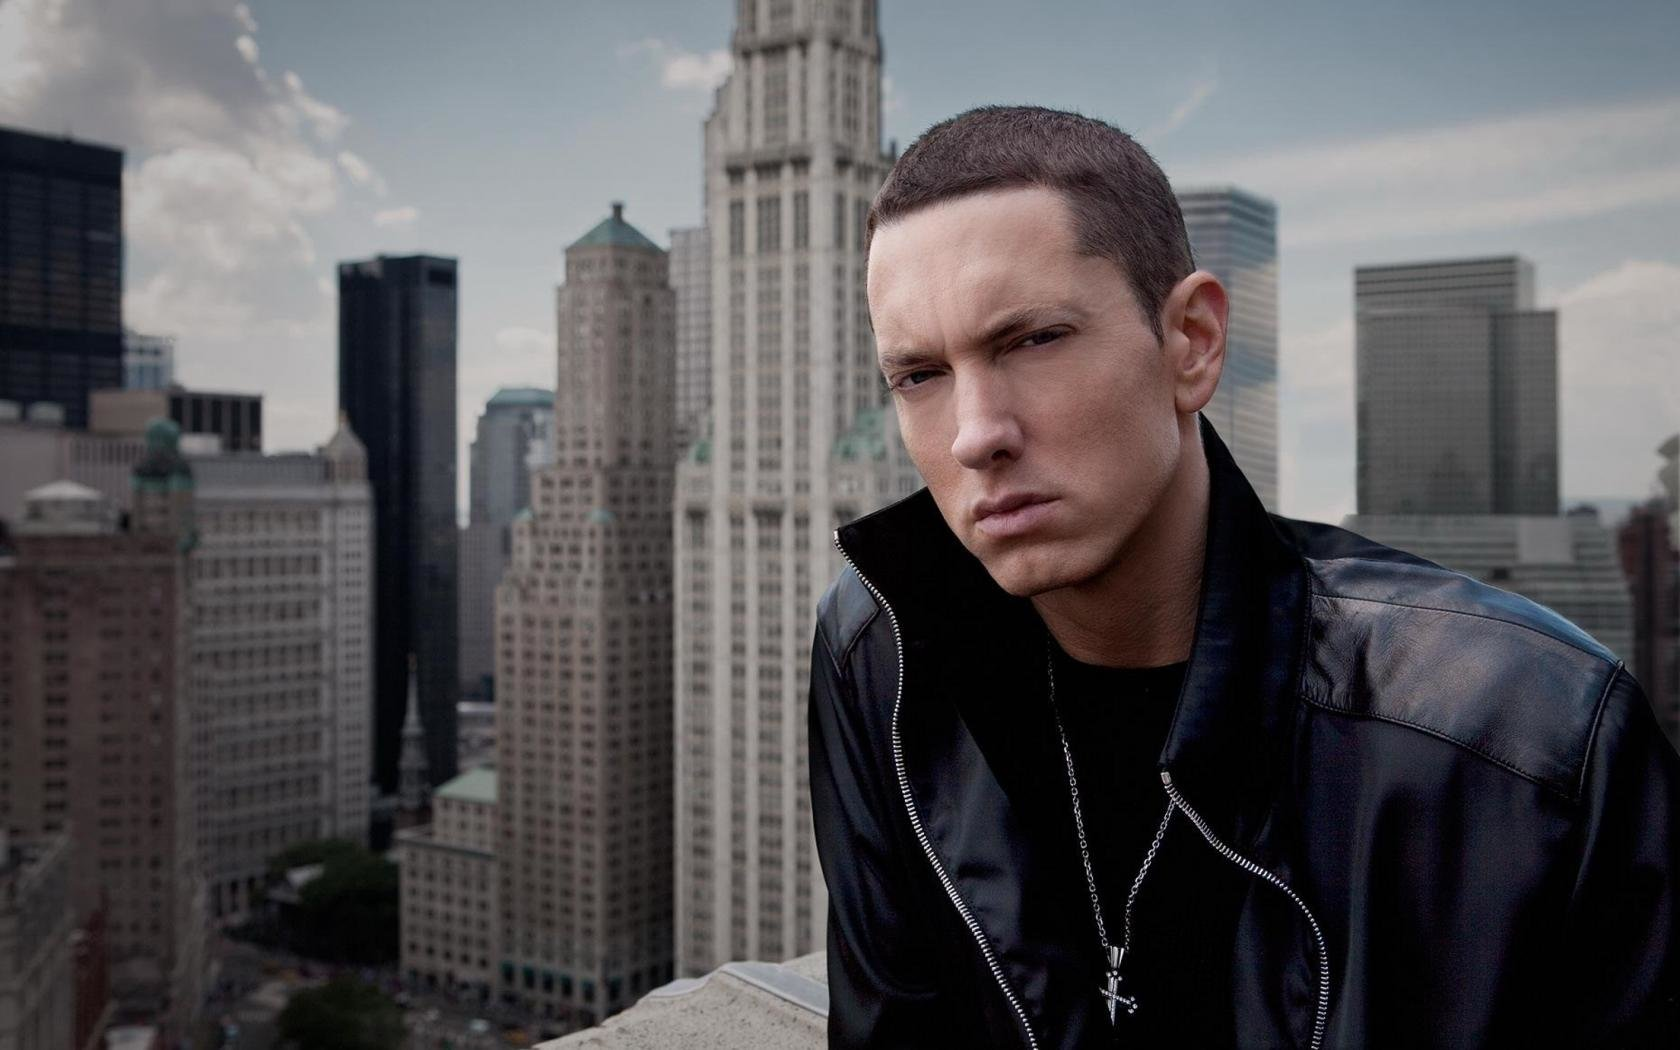 High resolution Eminem hd 1680x1050 background ID:452220 for computer